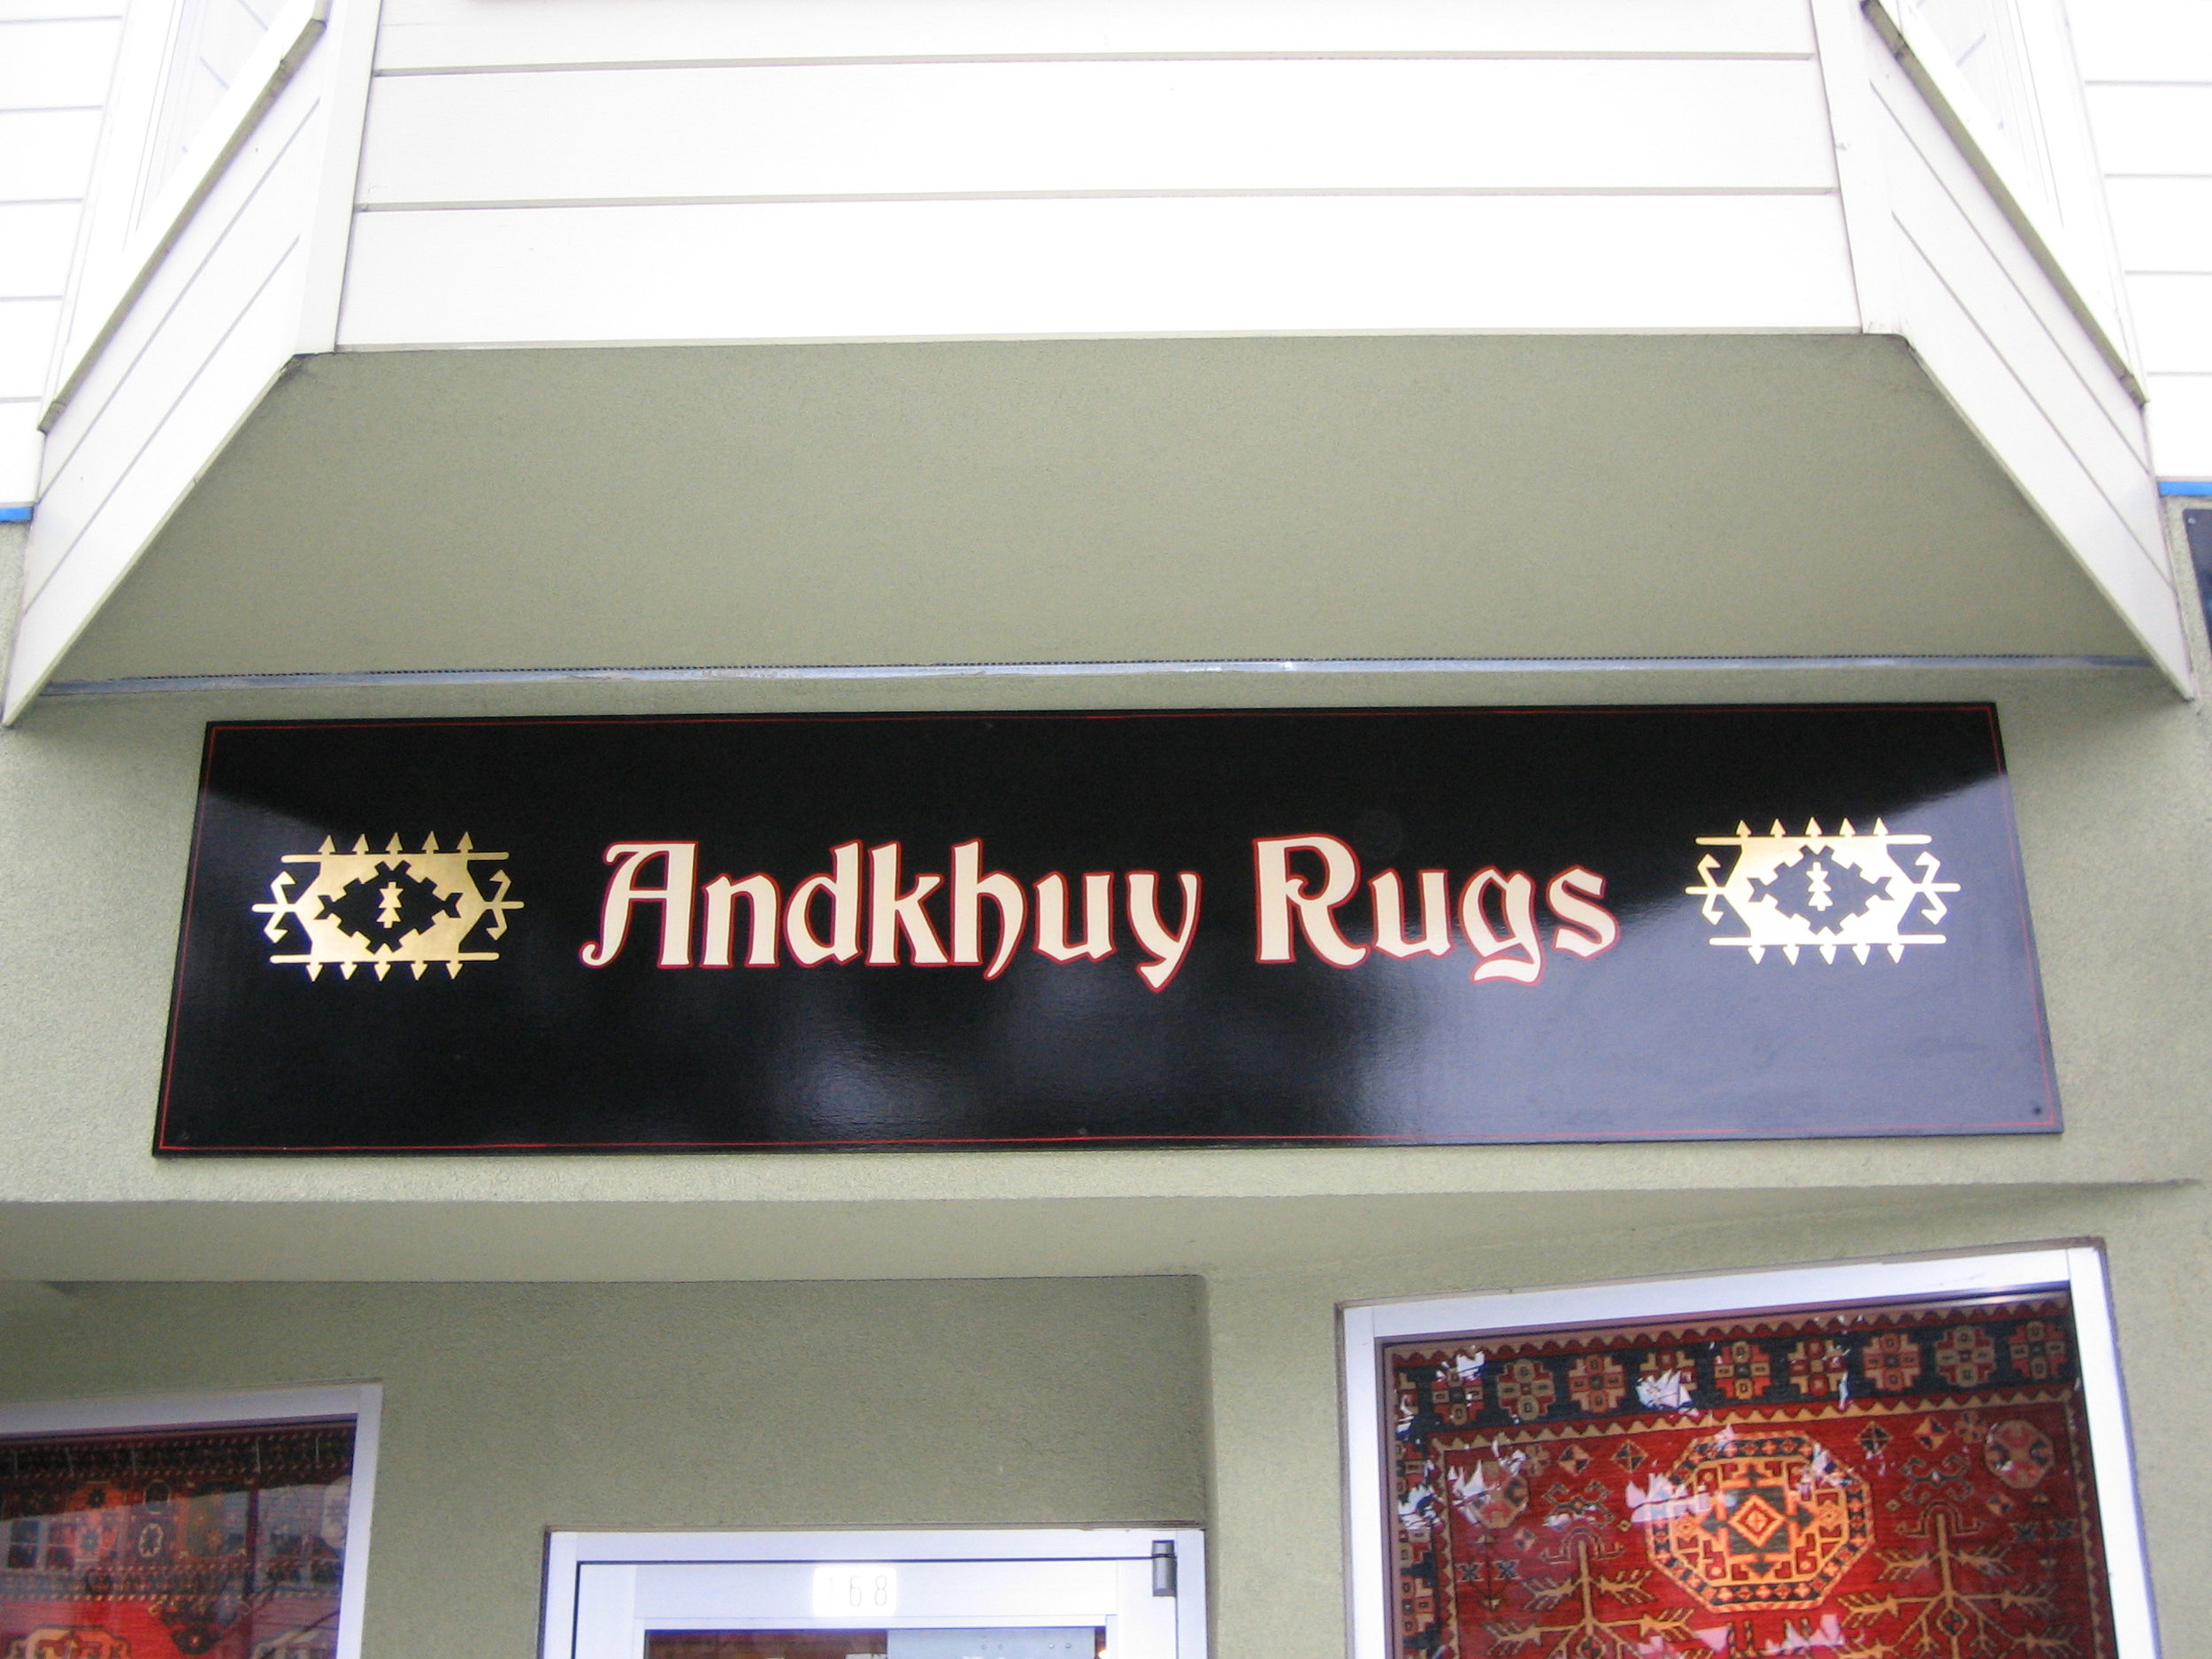 HAND-andkhuy-rugs-wall_3161105157_o.jpg